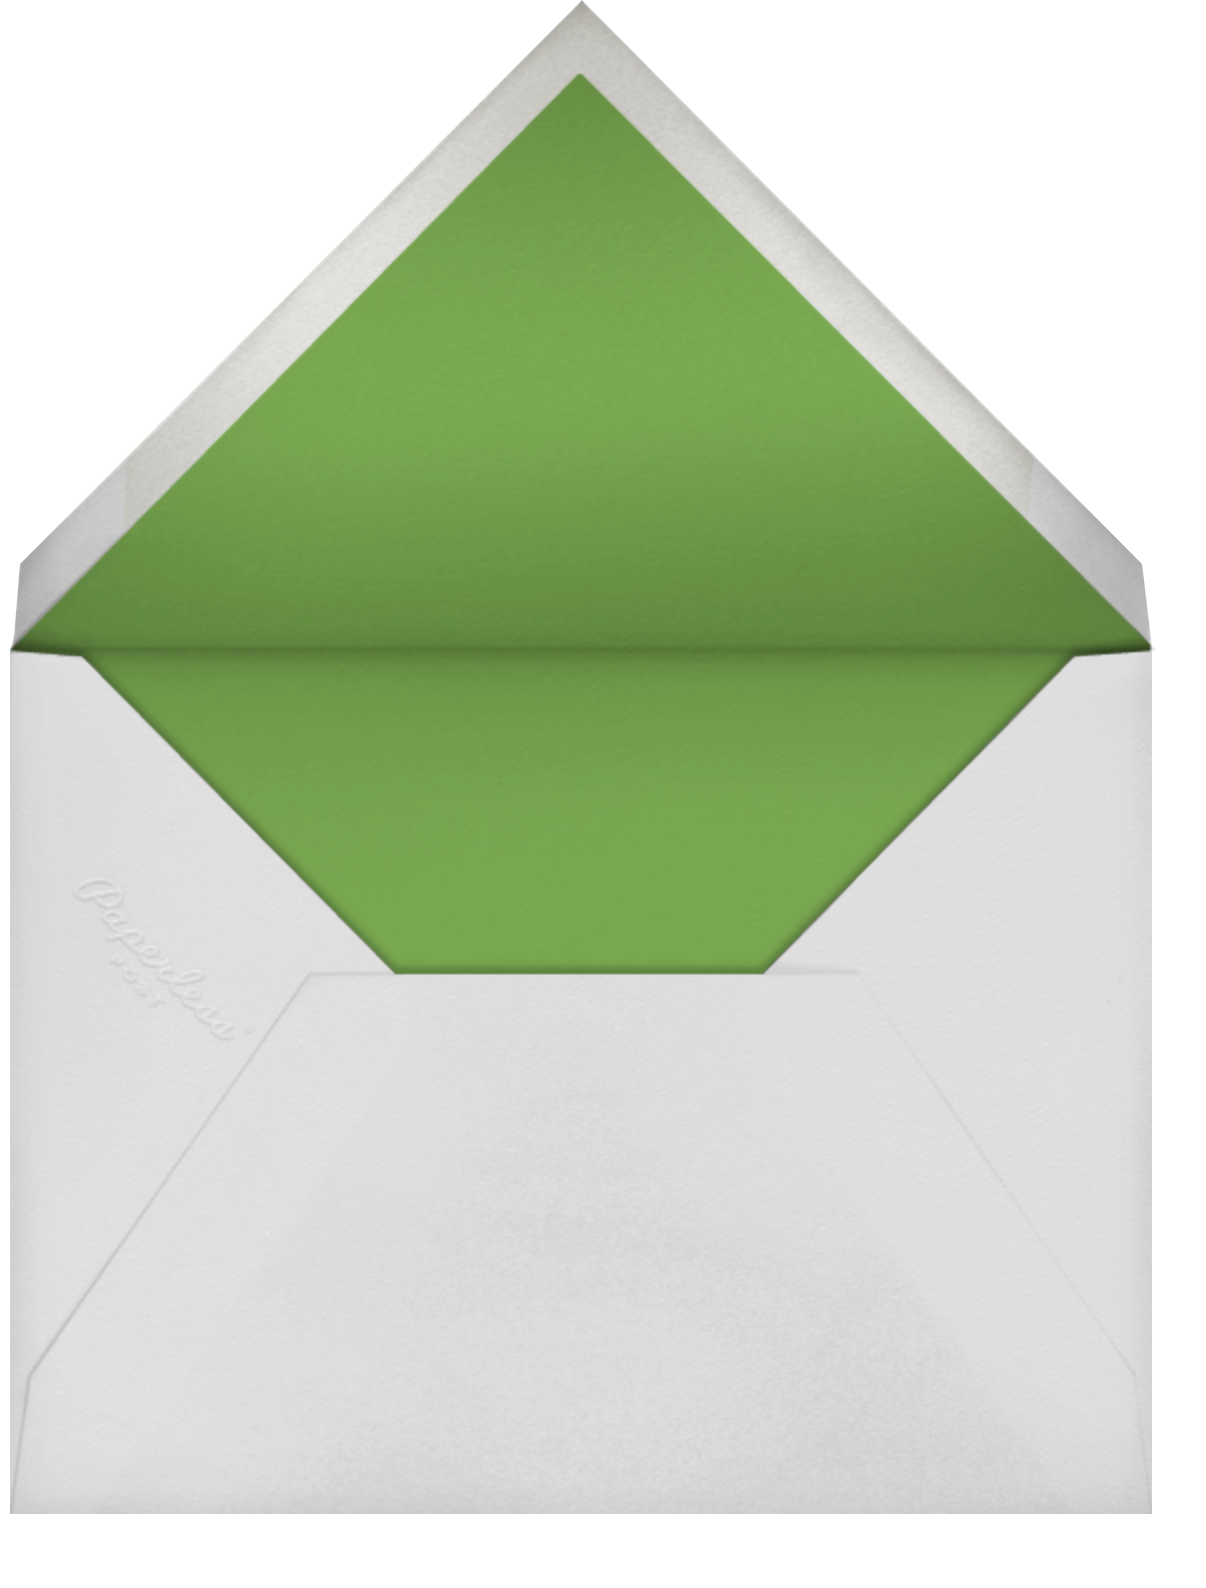 Cadogan Blue Square - Paperless Post - Reception - envelope back